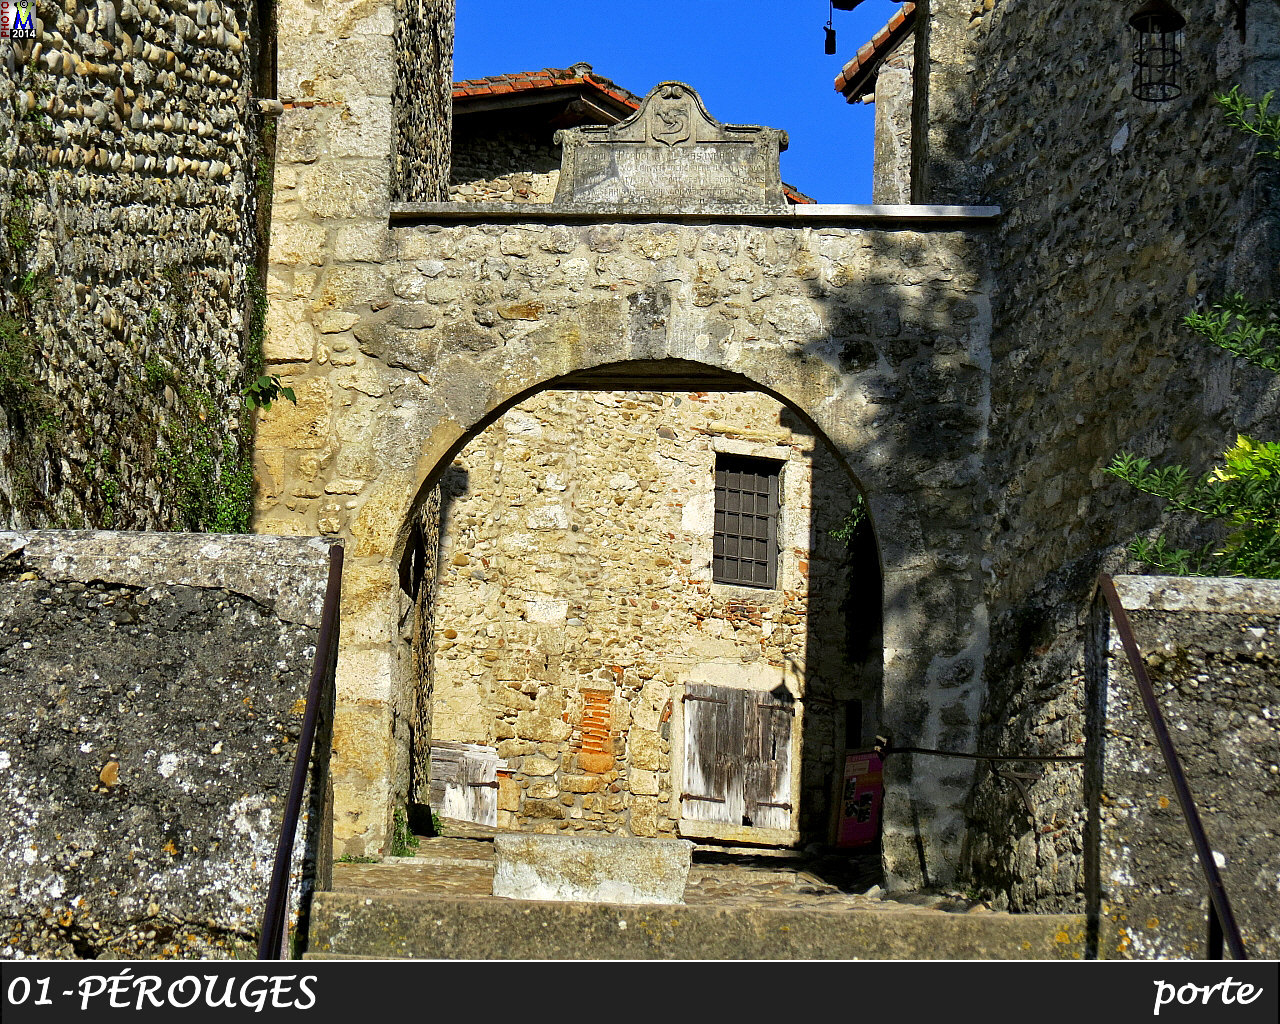 01PEROUGES_porte_156.jpg